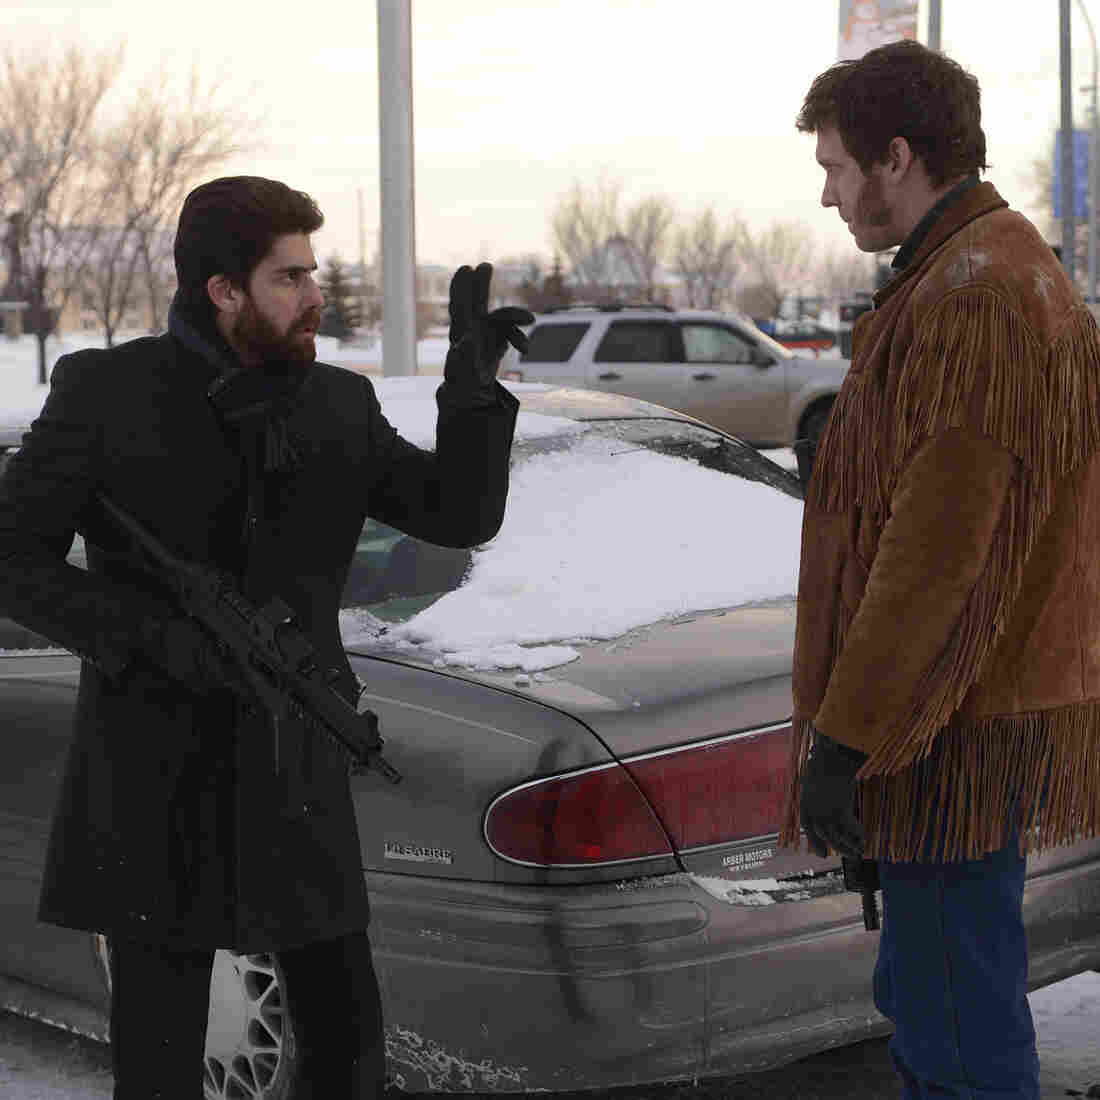 Mr. Numbers (Adam Goldberg) signs to Mr. Wrench, played by Russell Harvard, in the sixth episode of the TV show Fargo.